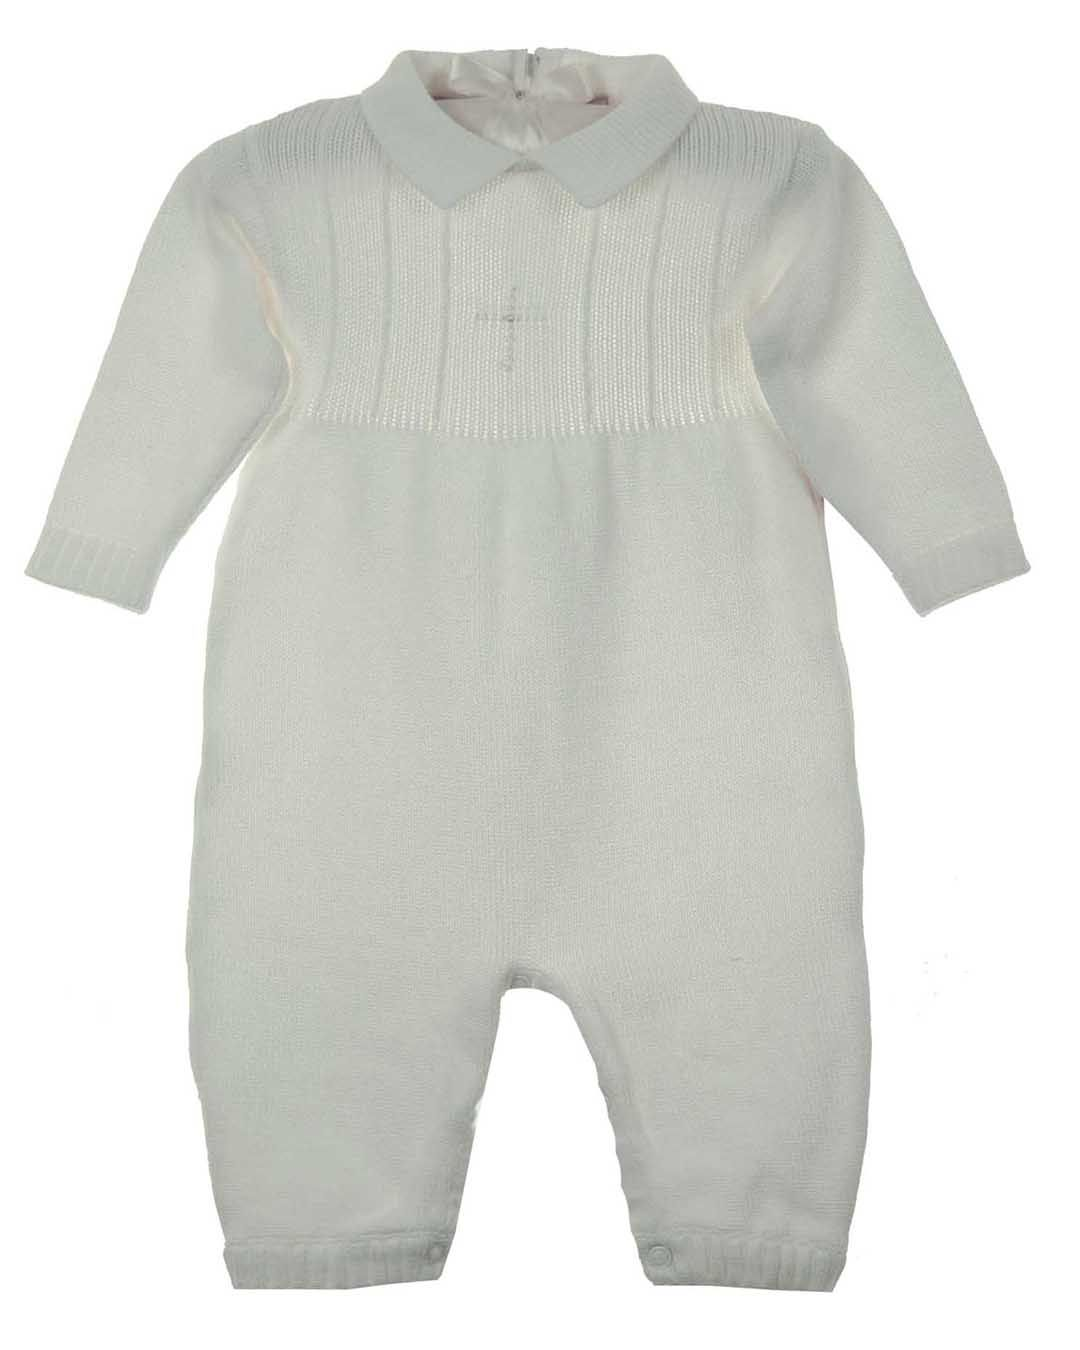 6c3b1b60e0cd The Boss s Christening outfit! Found it at Grammie s Attic after an ...